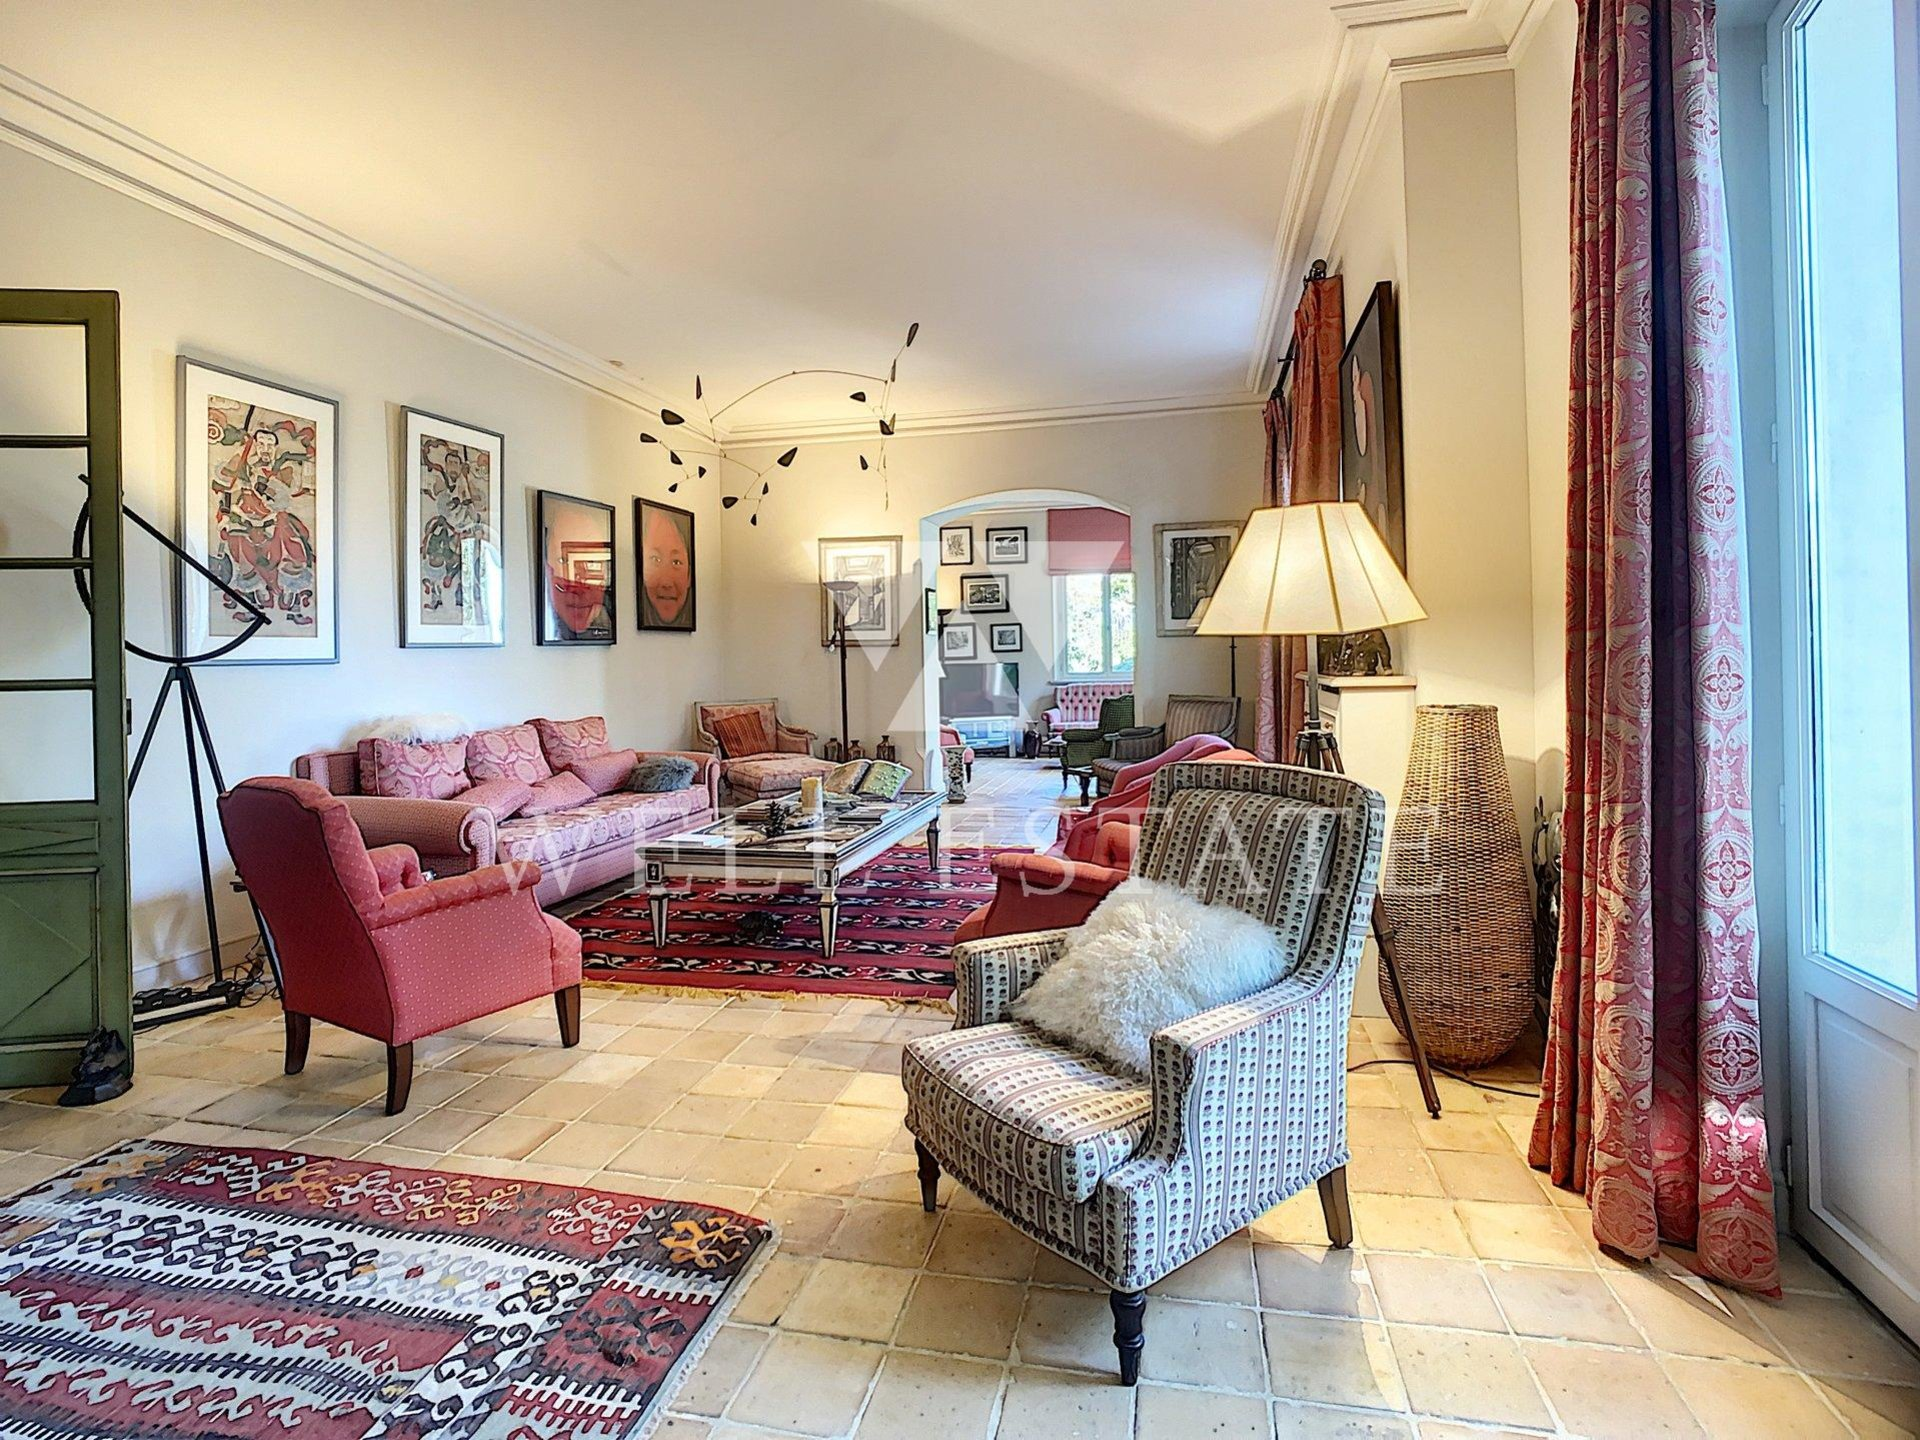 BASTIDE XIX 450M2 COMPLETELY RENOVATED 7 BEDROOMS SWIMMING POOL